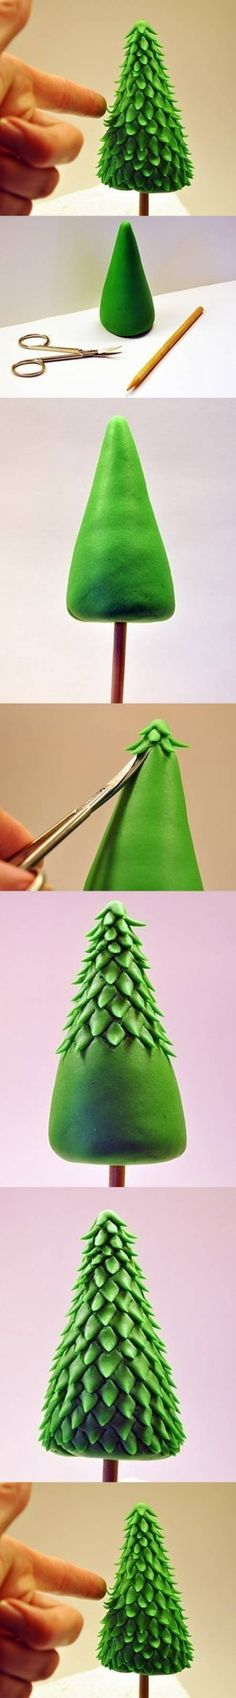 DIY Clay Christmas Tree Internet Tutorial DIY Projects